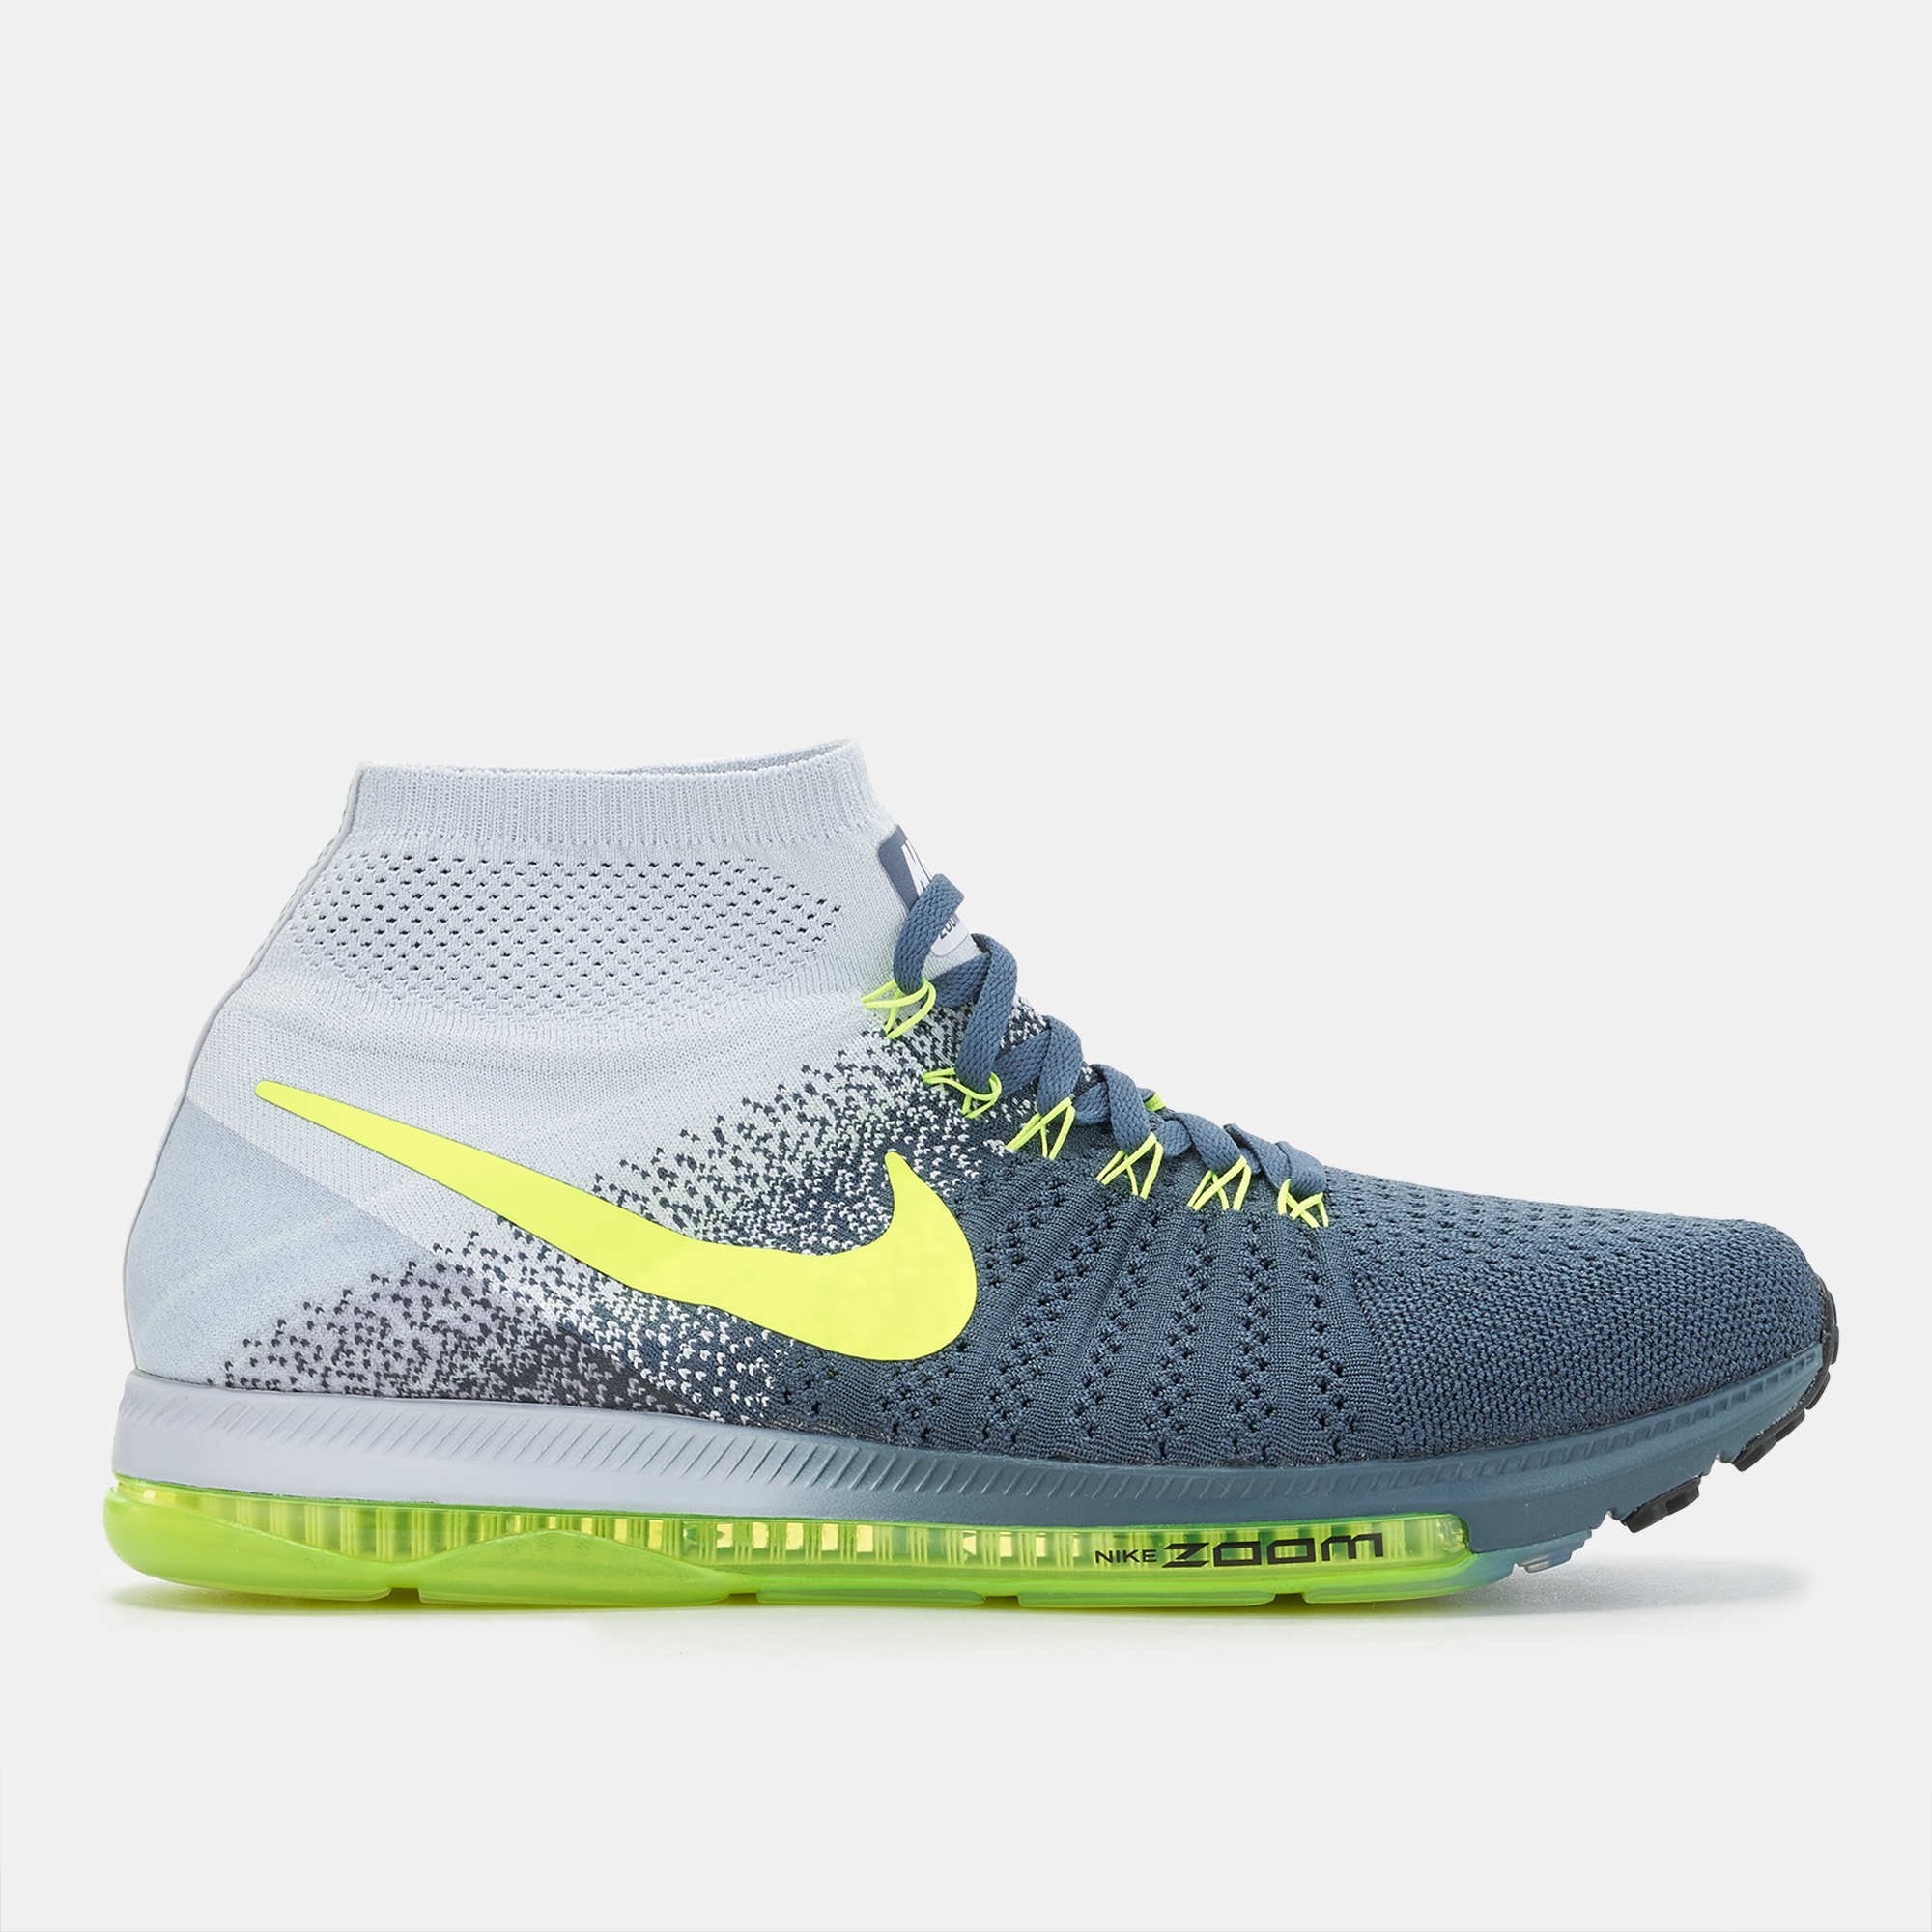 detailed look e38c1 731b7 Nike Air Zoom All Out Flyknit Shoe  Running Shoes  Shoes  Mens Sale   Sale  SSS